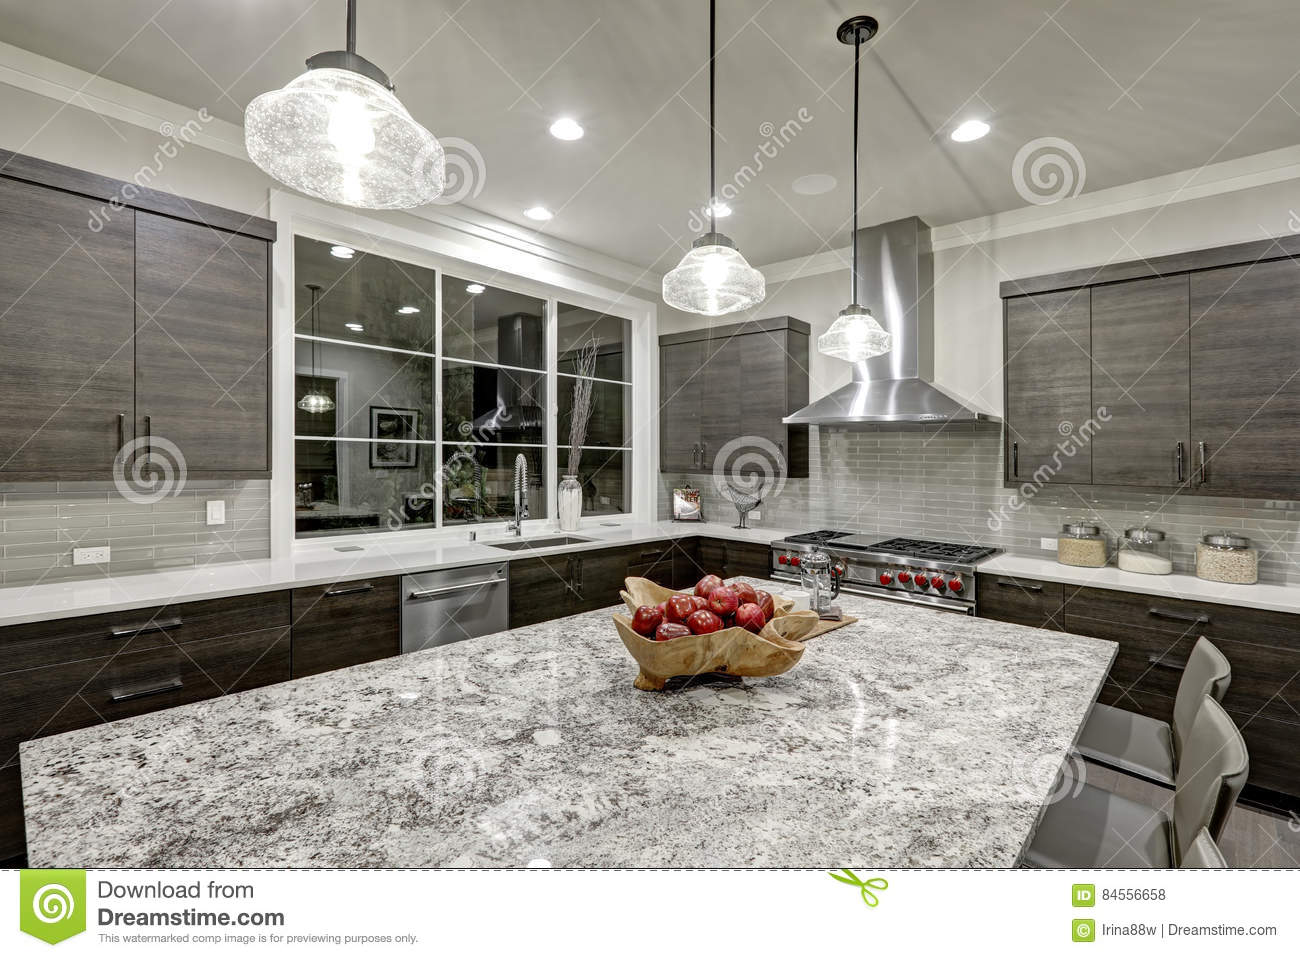 Modern Traditional Kitchen Design In New Luxury Home Features Dark Gray  Cabinets, White Quartz And Granite Countertops, Glossy Gray Linear Tile  Backsplash ...